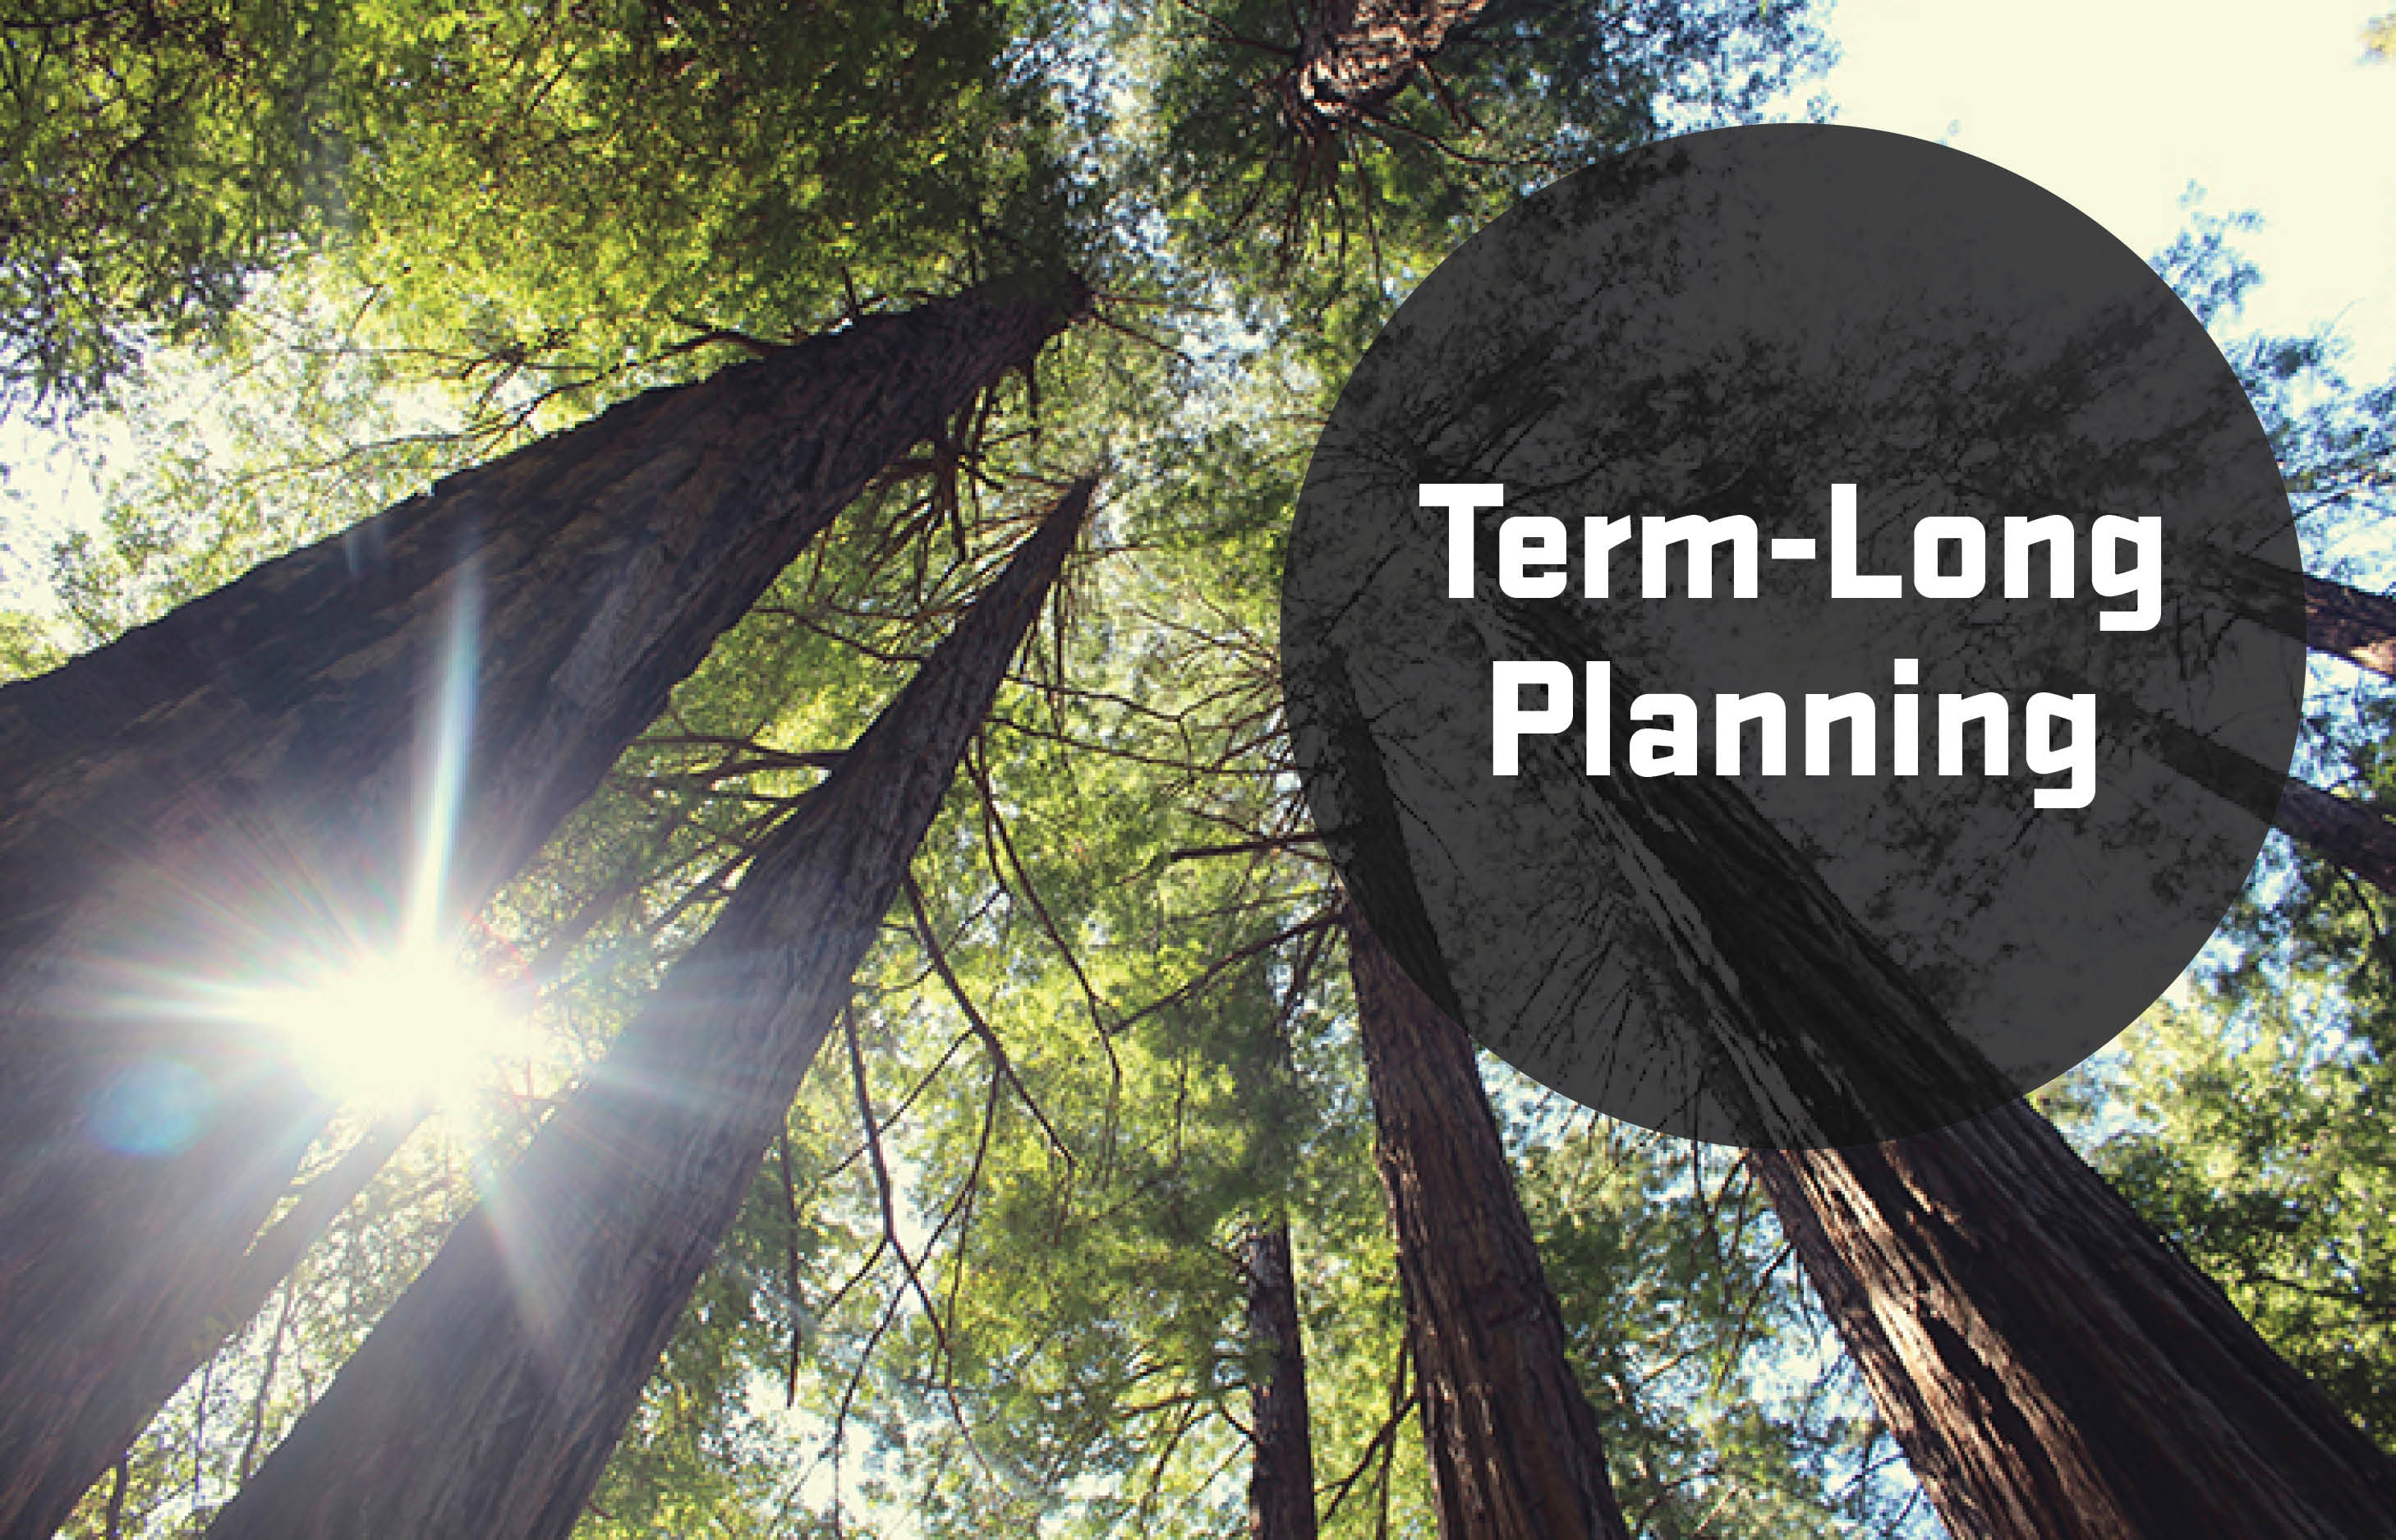 Term-Long Planning